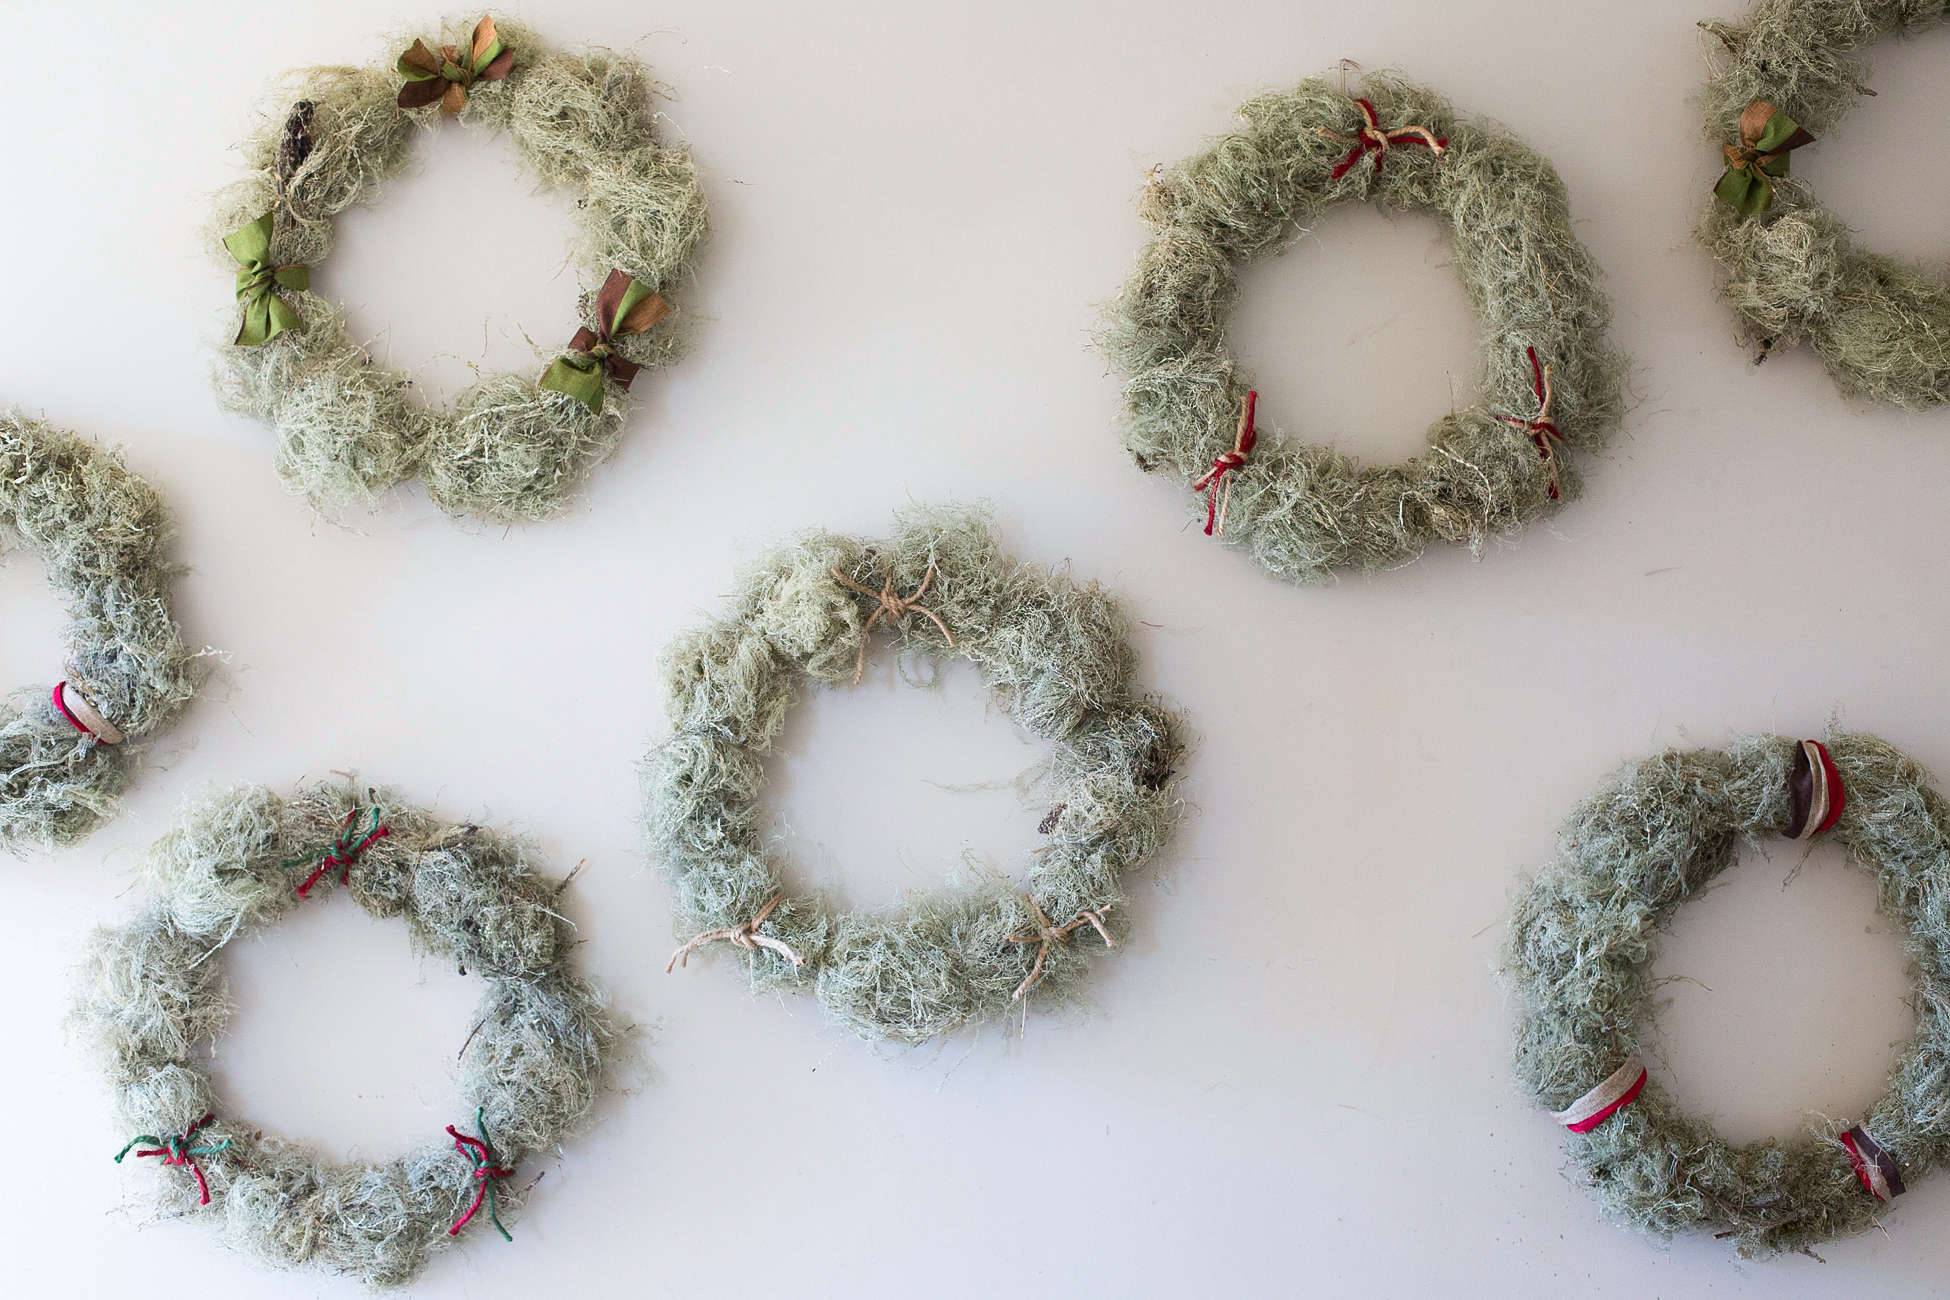 The holiday wreaths on display at the Russian River Flower School.